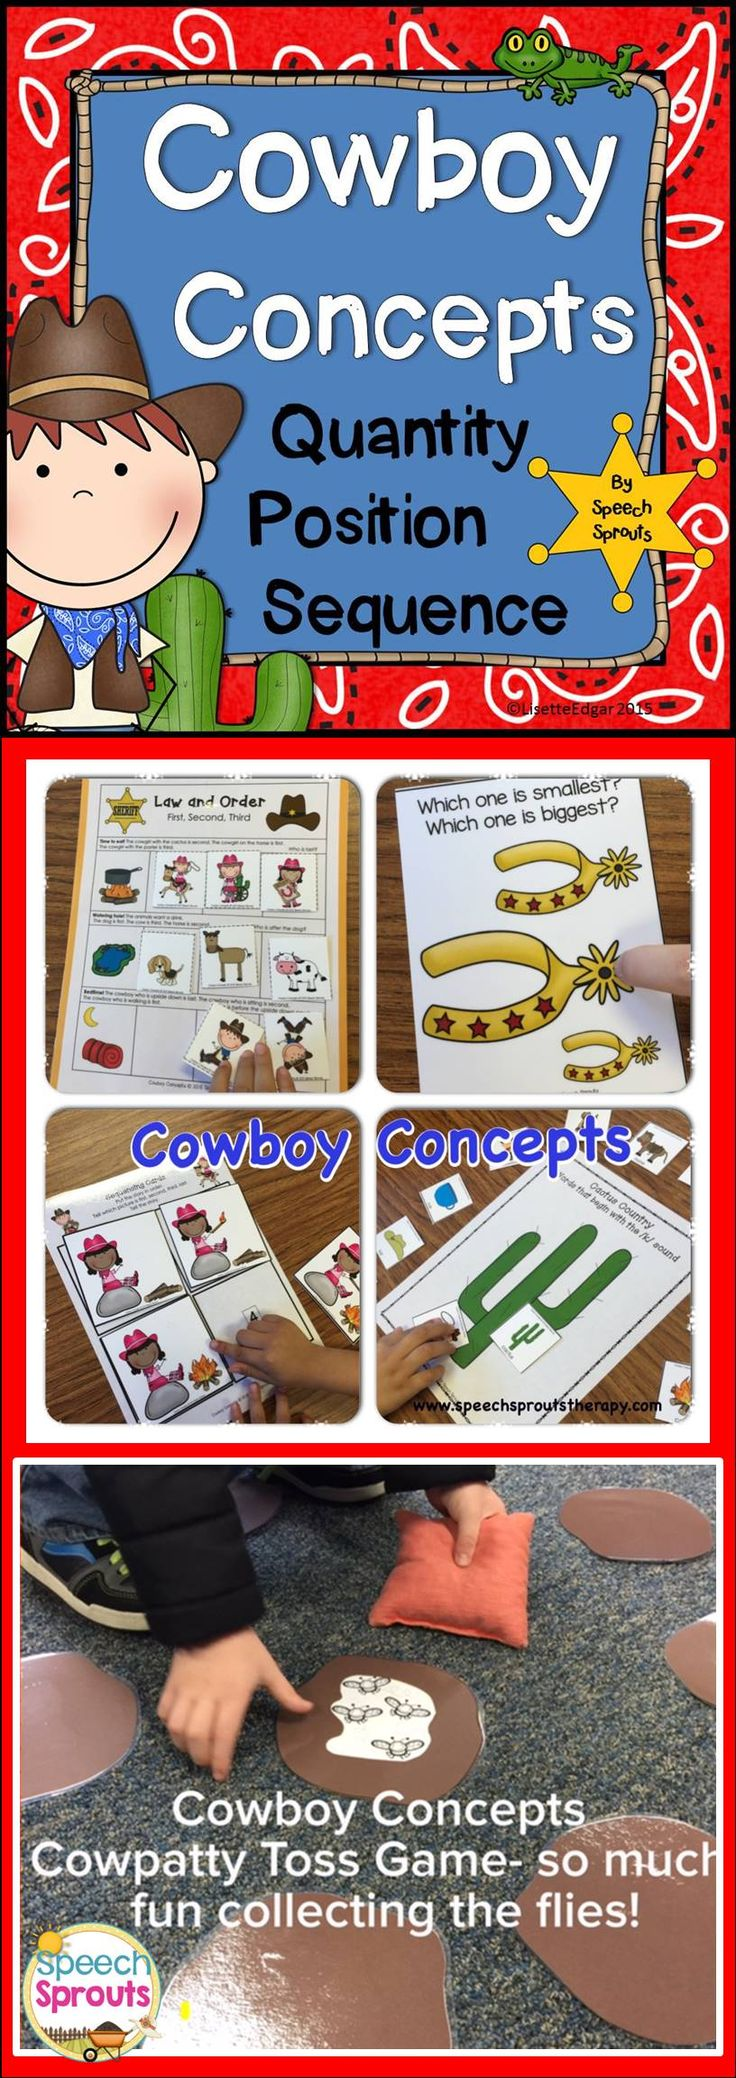 $ Quantity, Position and Sequence Concepts for Your Cowboys and Cowgirls! Target vocabulary concepts critical for math and following classroom directions